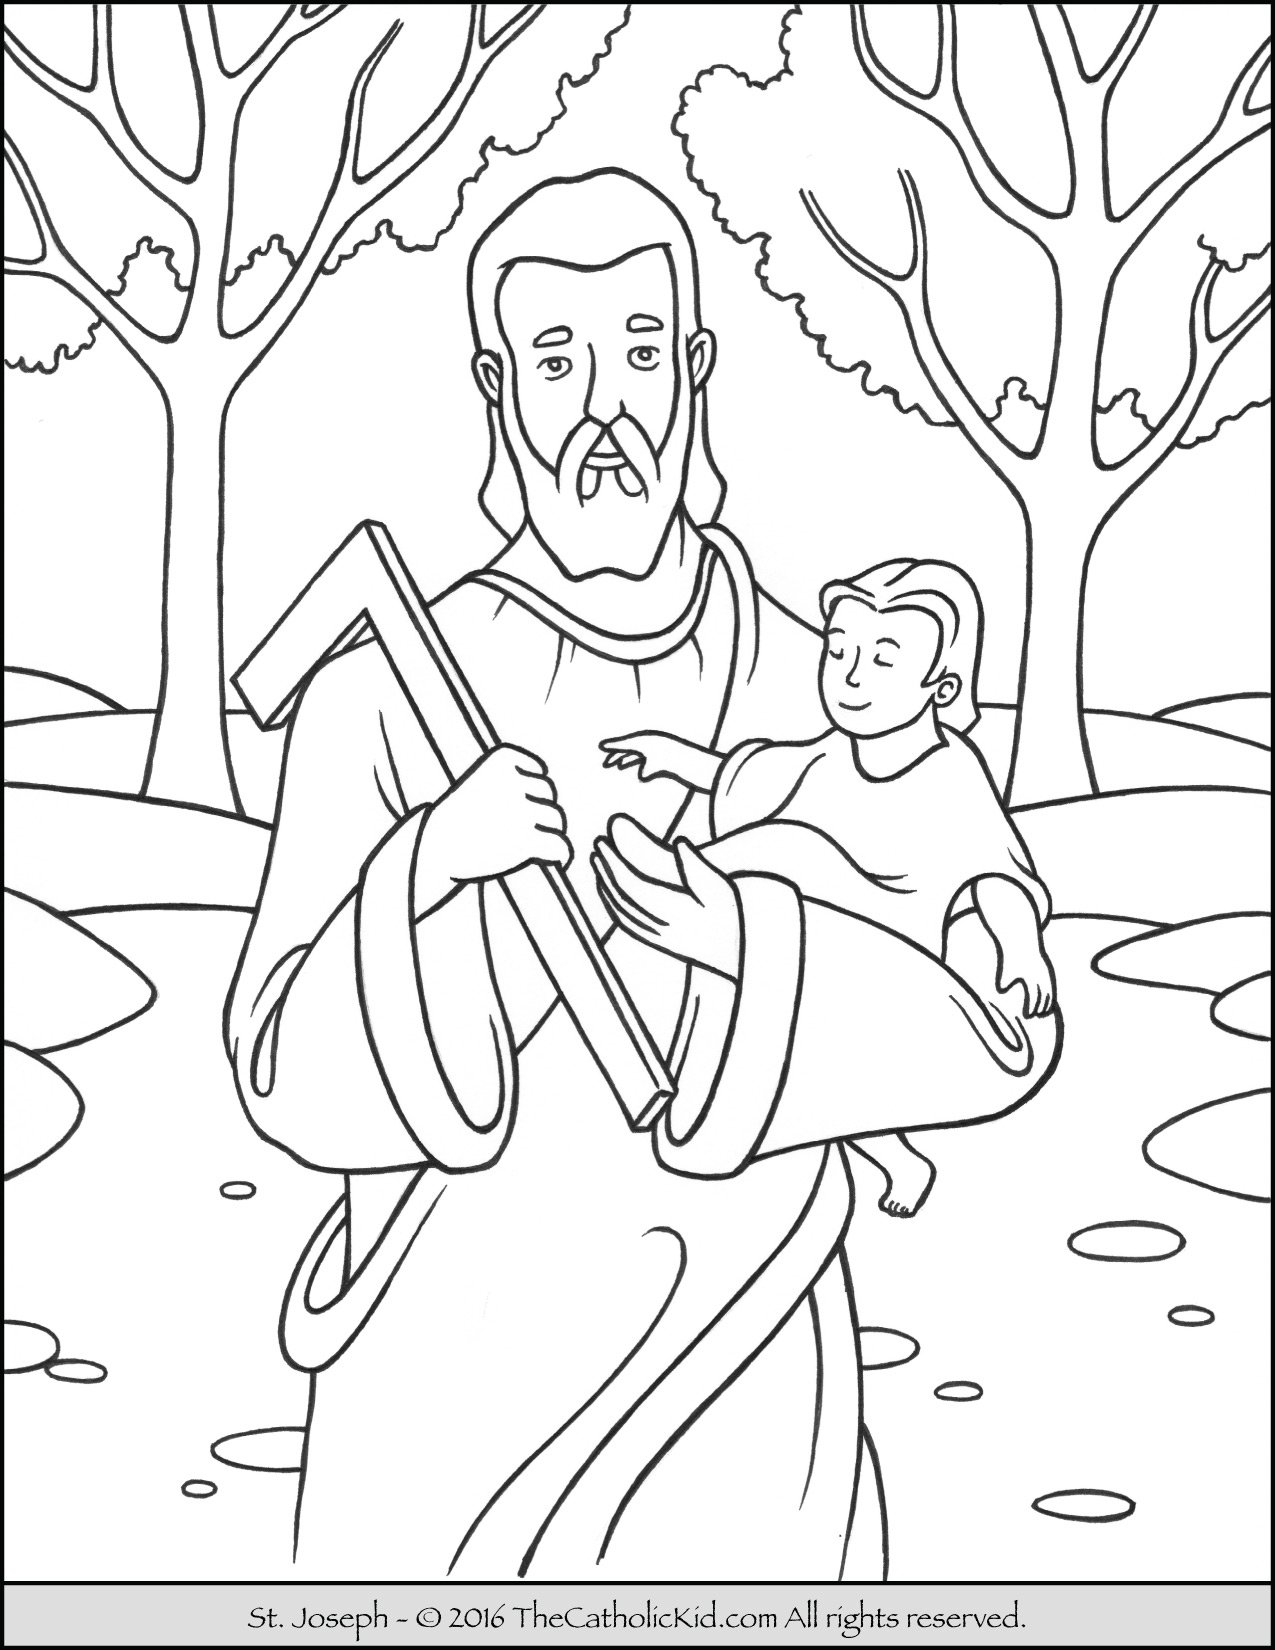 st joseph coloring page easy ways to celebrate saint joseph in your catholic home